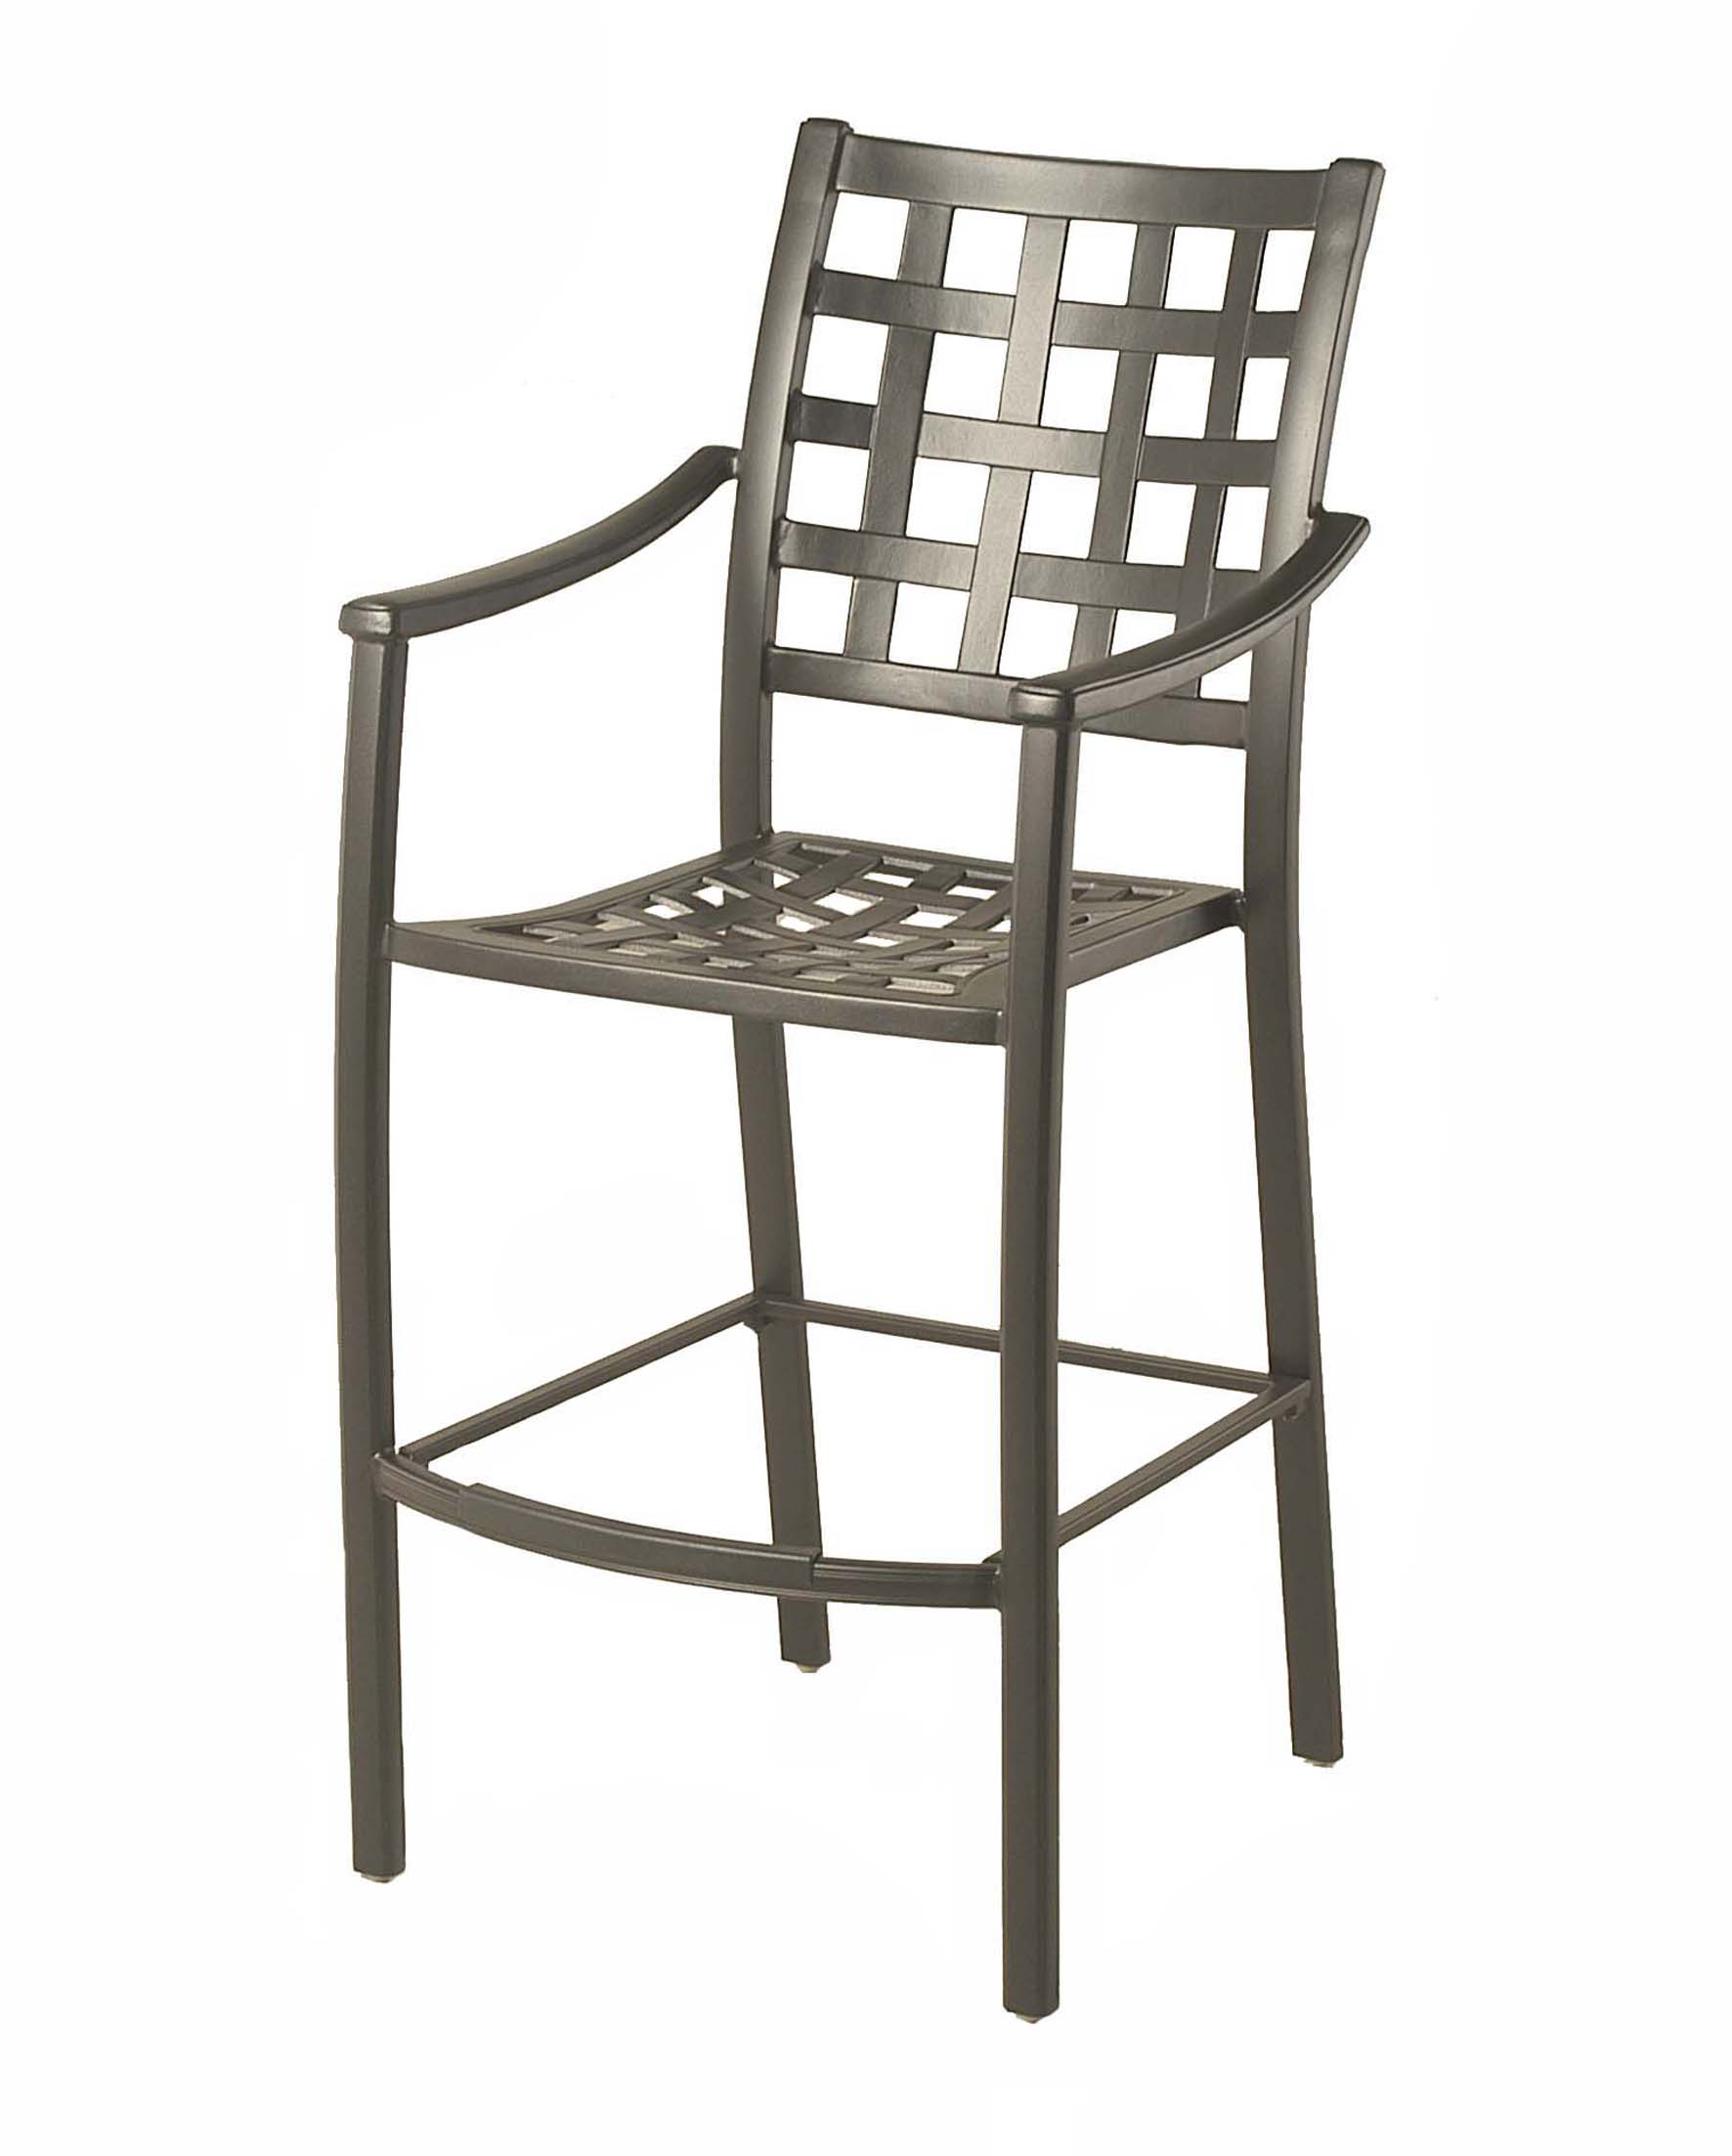 "Stratford Outdoor Stationary Bar Stool 24"" W x 19"" D x 29"" seat / 38"" arm / 49.2"" back Weight: 26.5lbs"